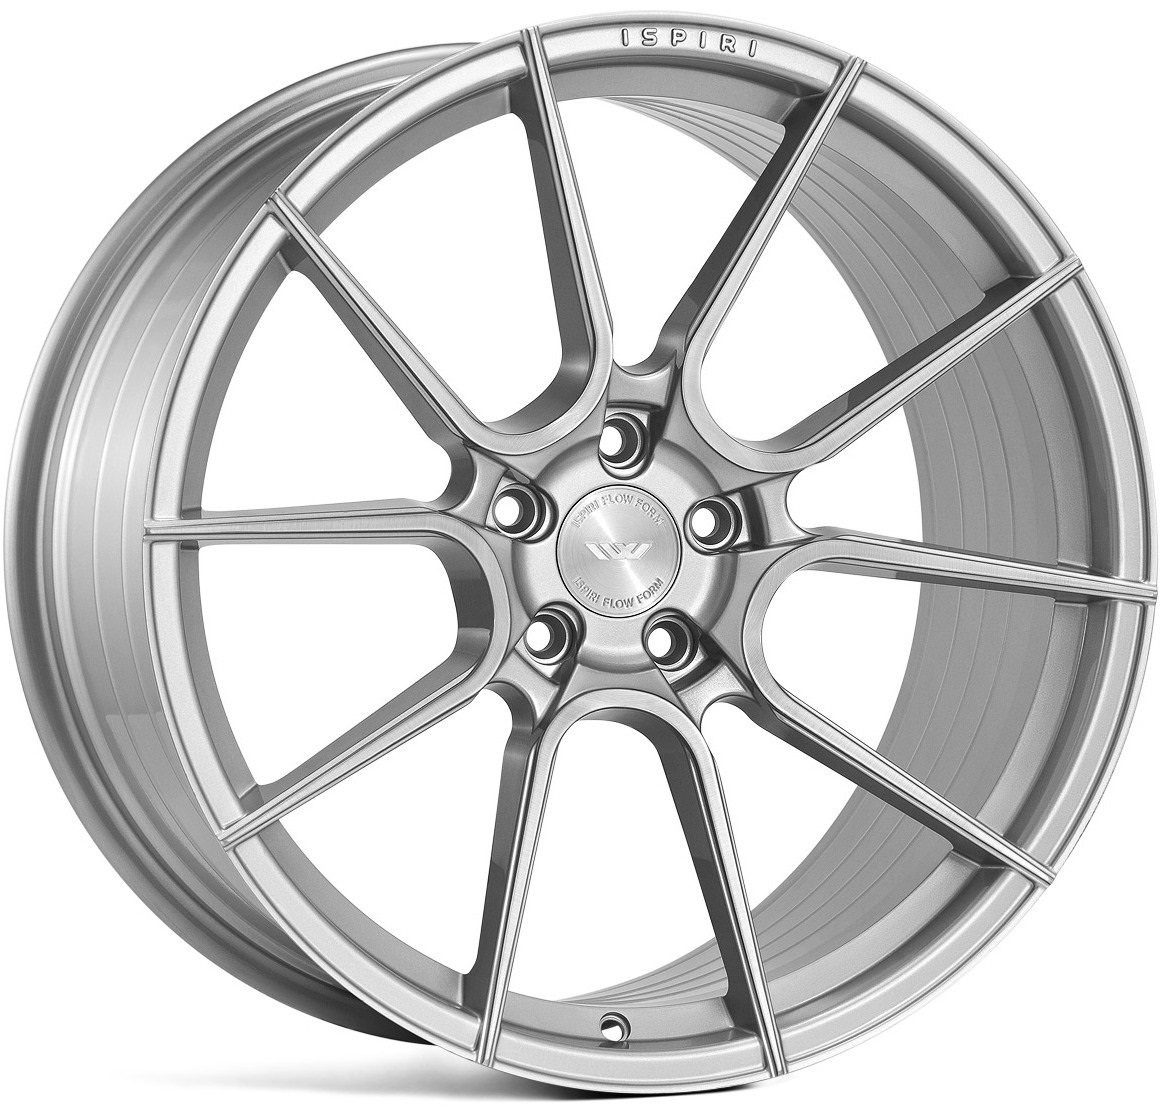 IW Automotive - FFR6 (Pure Silver Brushed)